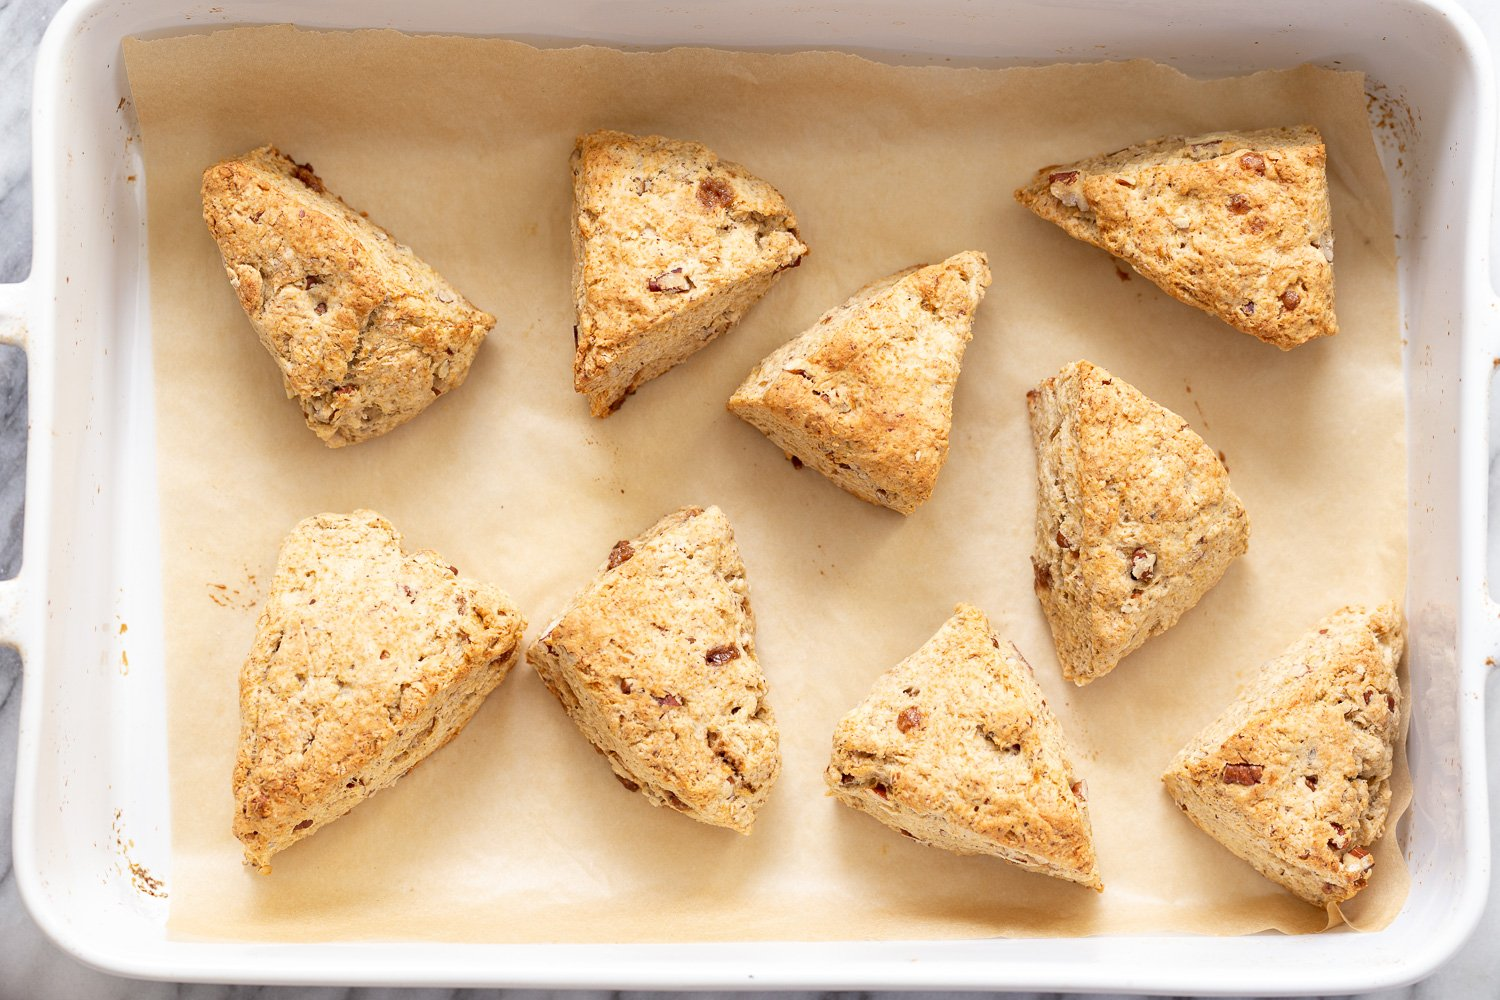 freshly baked golden brown vegan banana scones on a cookie sheet